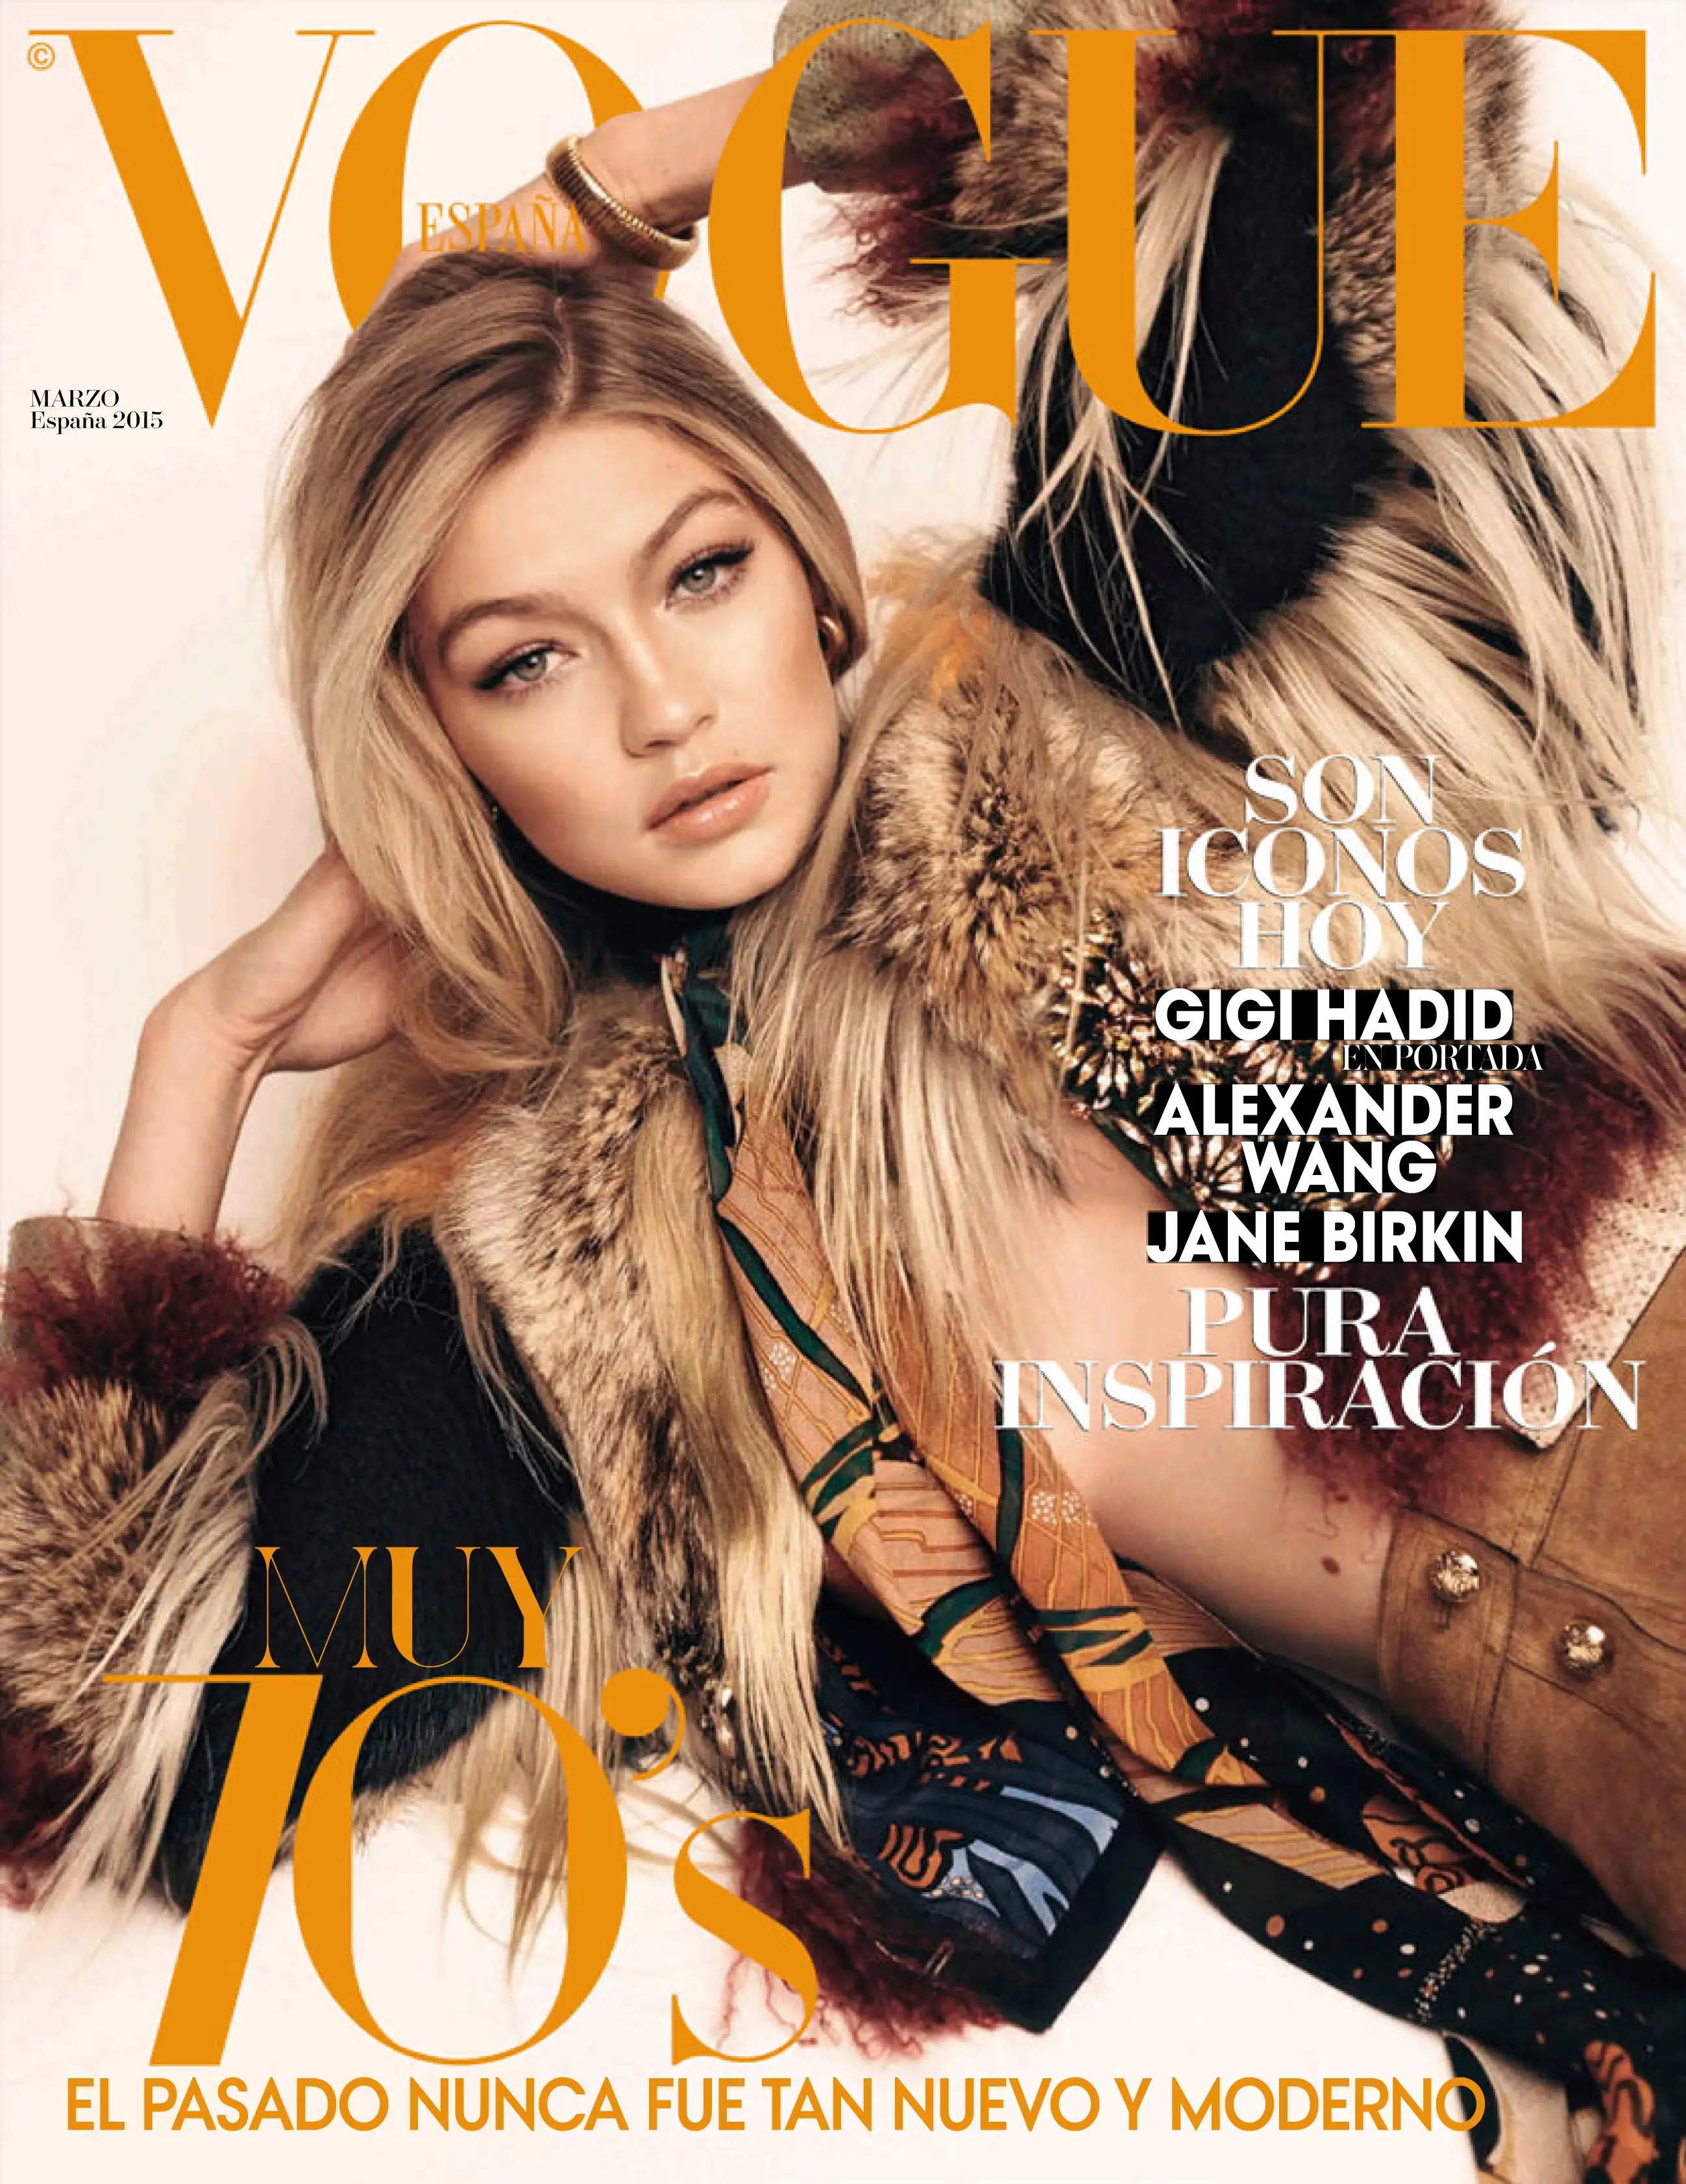 Gigi Hadid Vogue Espana cover